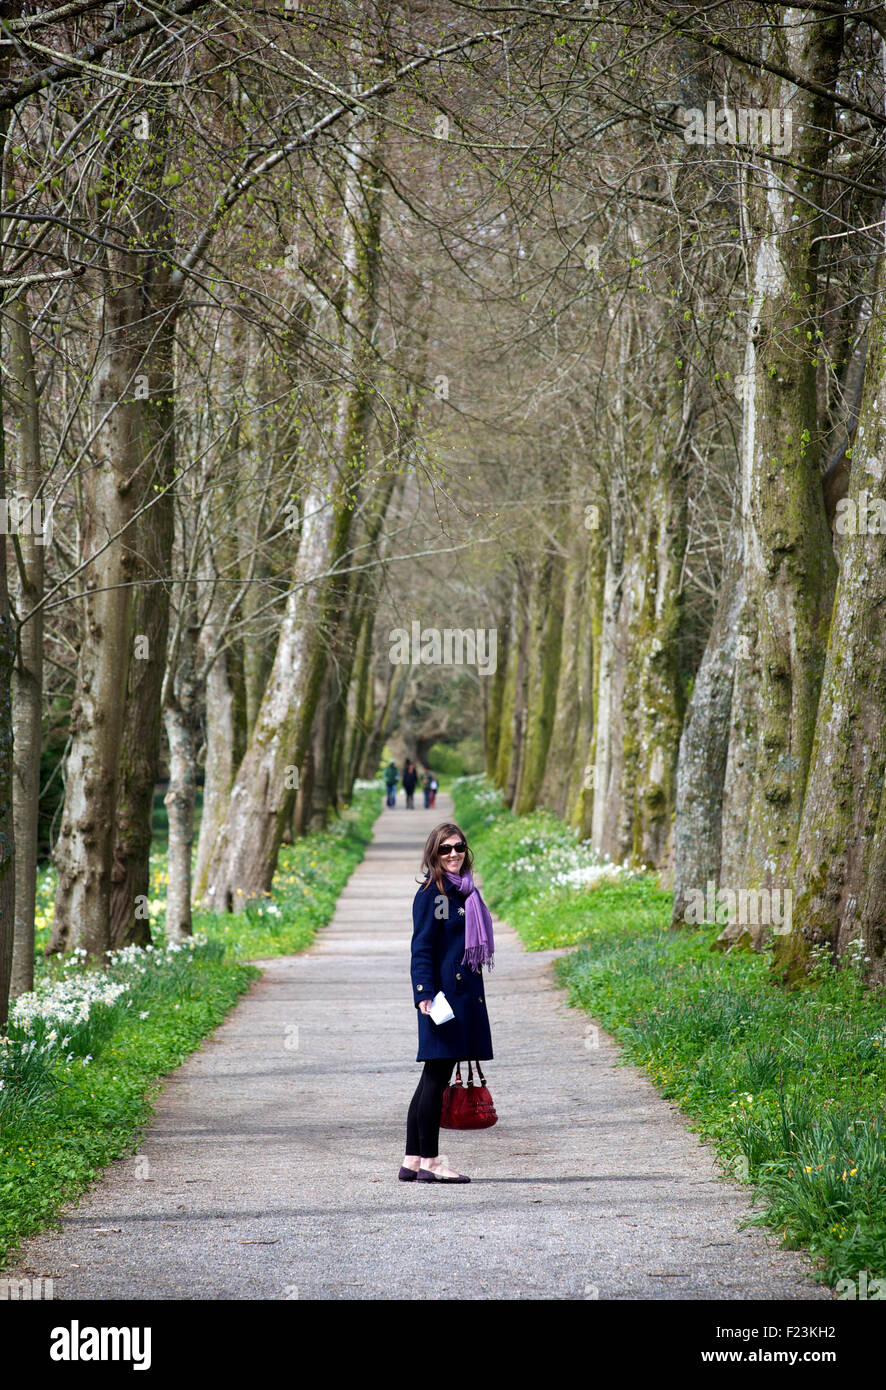 Woman standing on a path flanked with tall trees and smiling. Devon, England - Stock Image